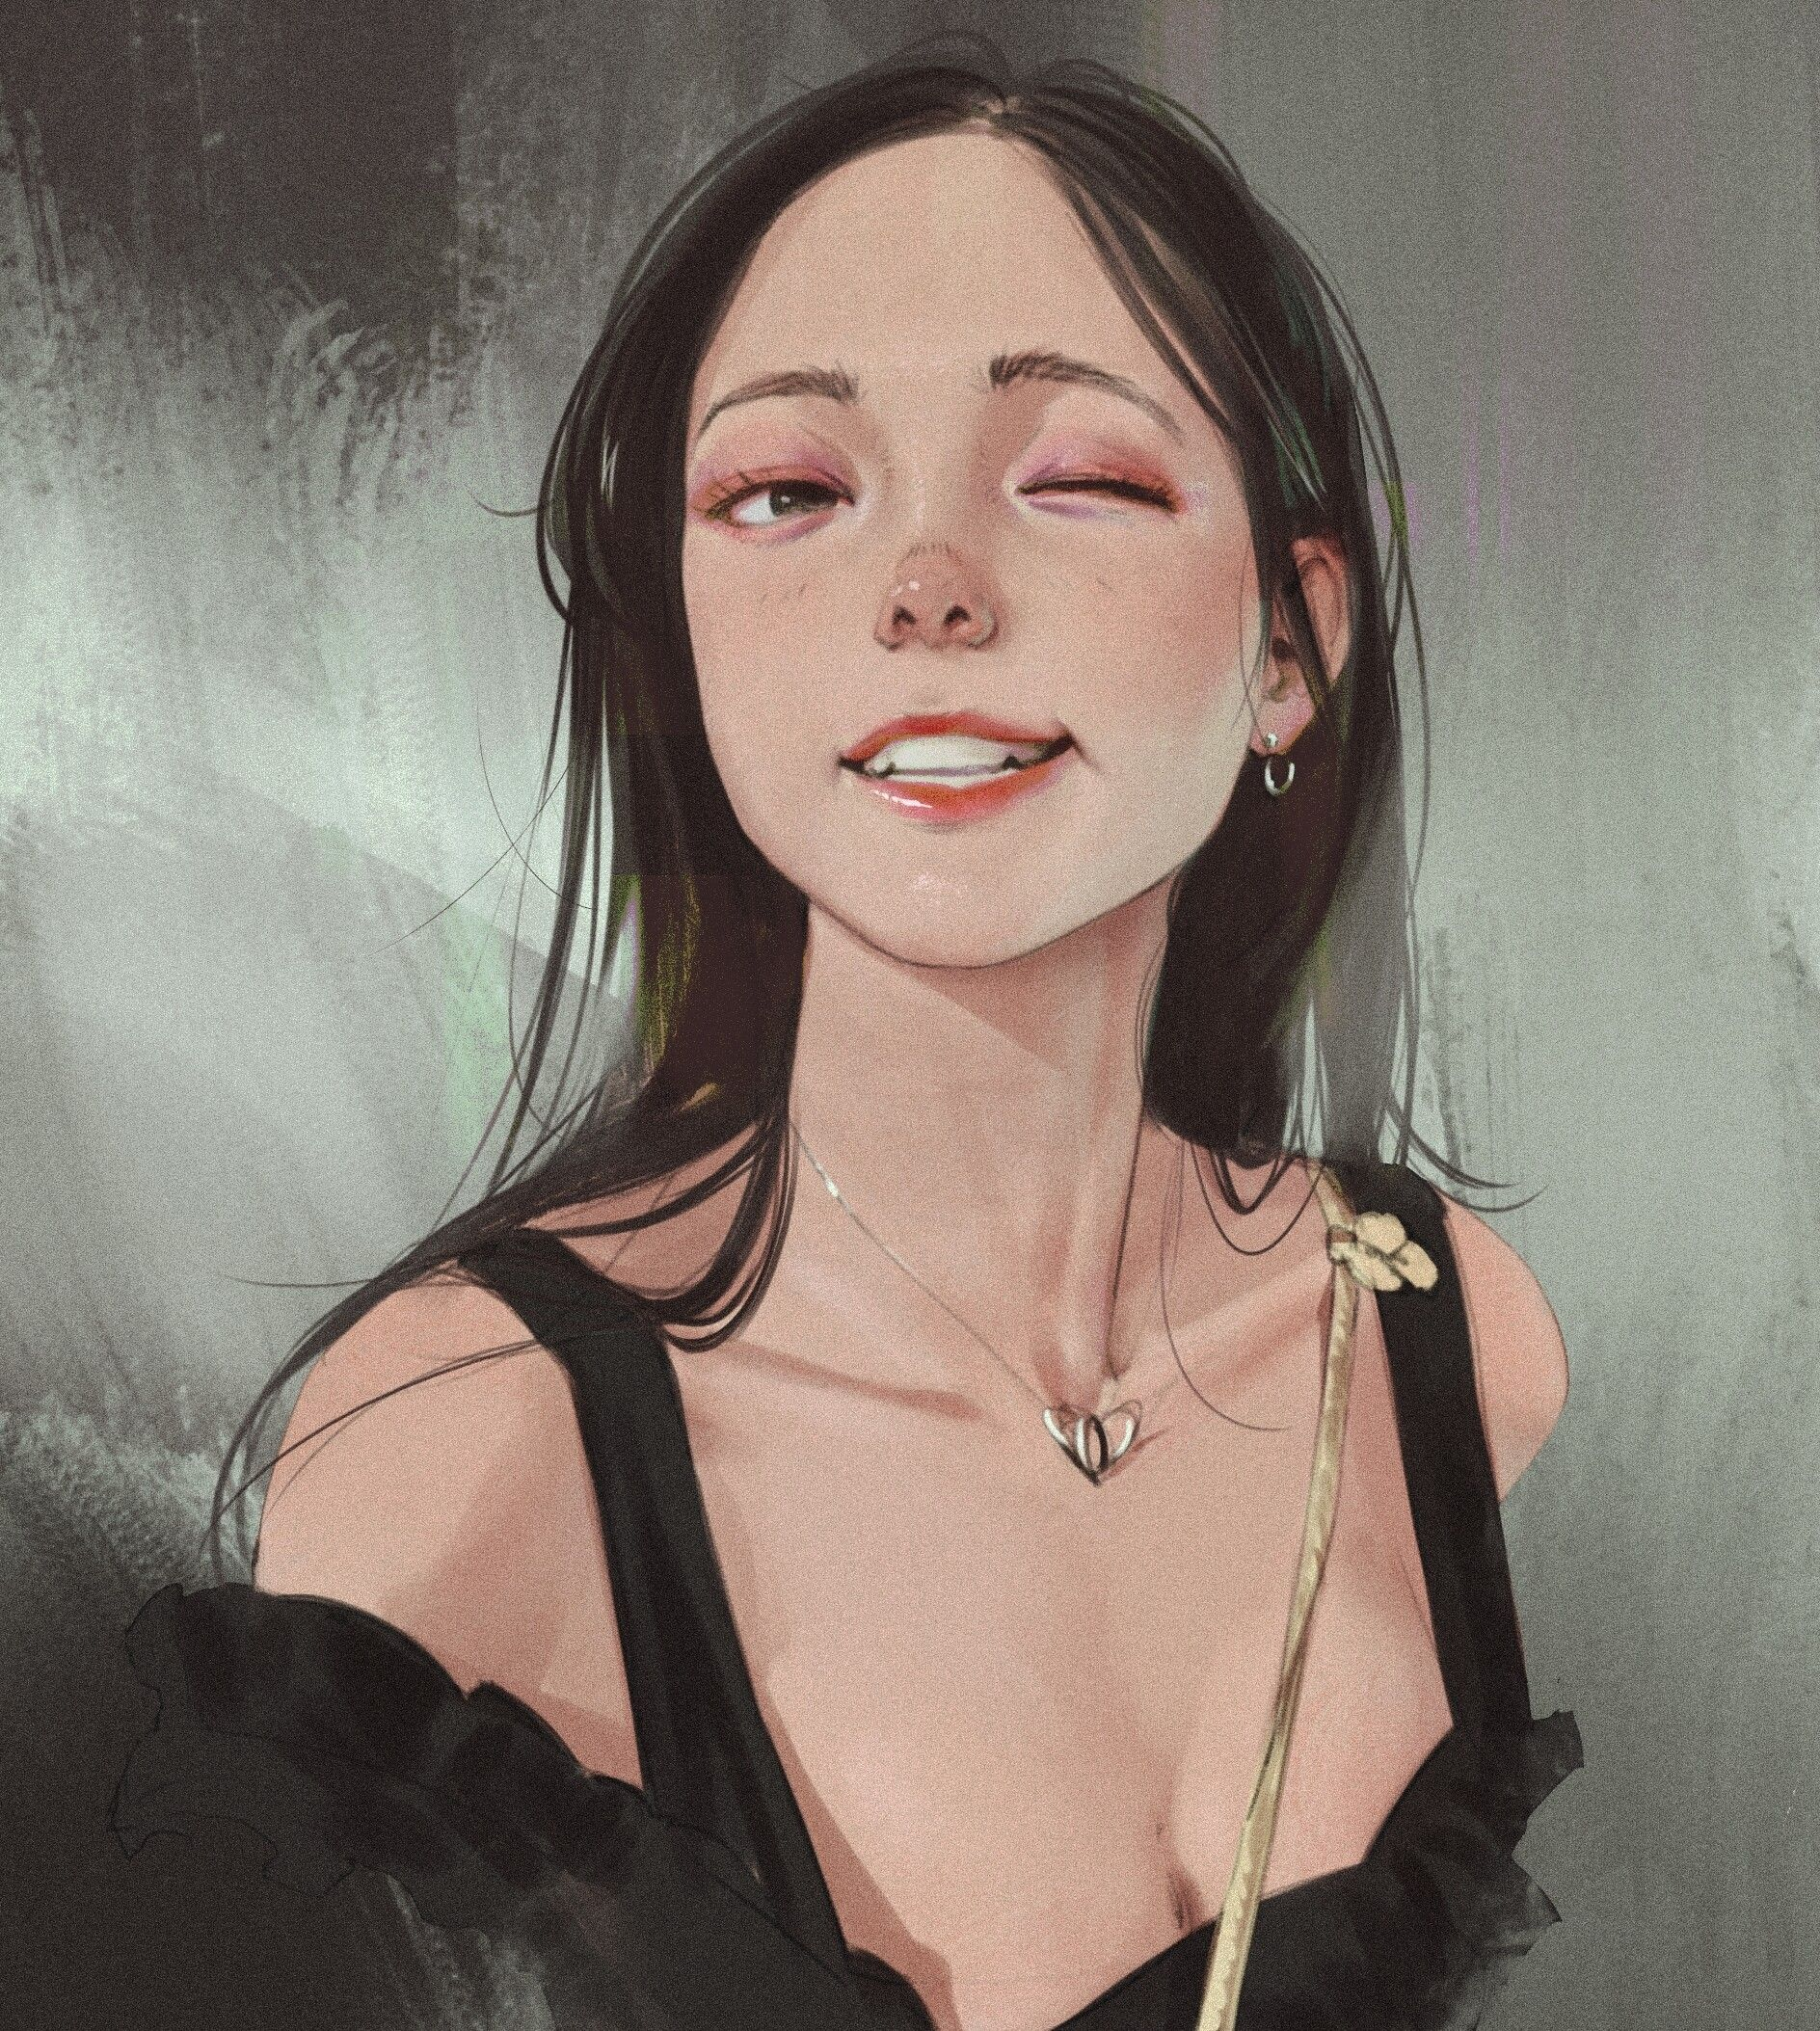 Artstation Some Photo Practice With References Rui Li In 2020 Anime Art Girl Aesthetic Art Realistic Drawings